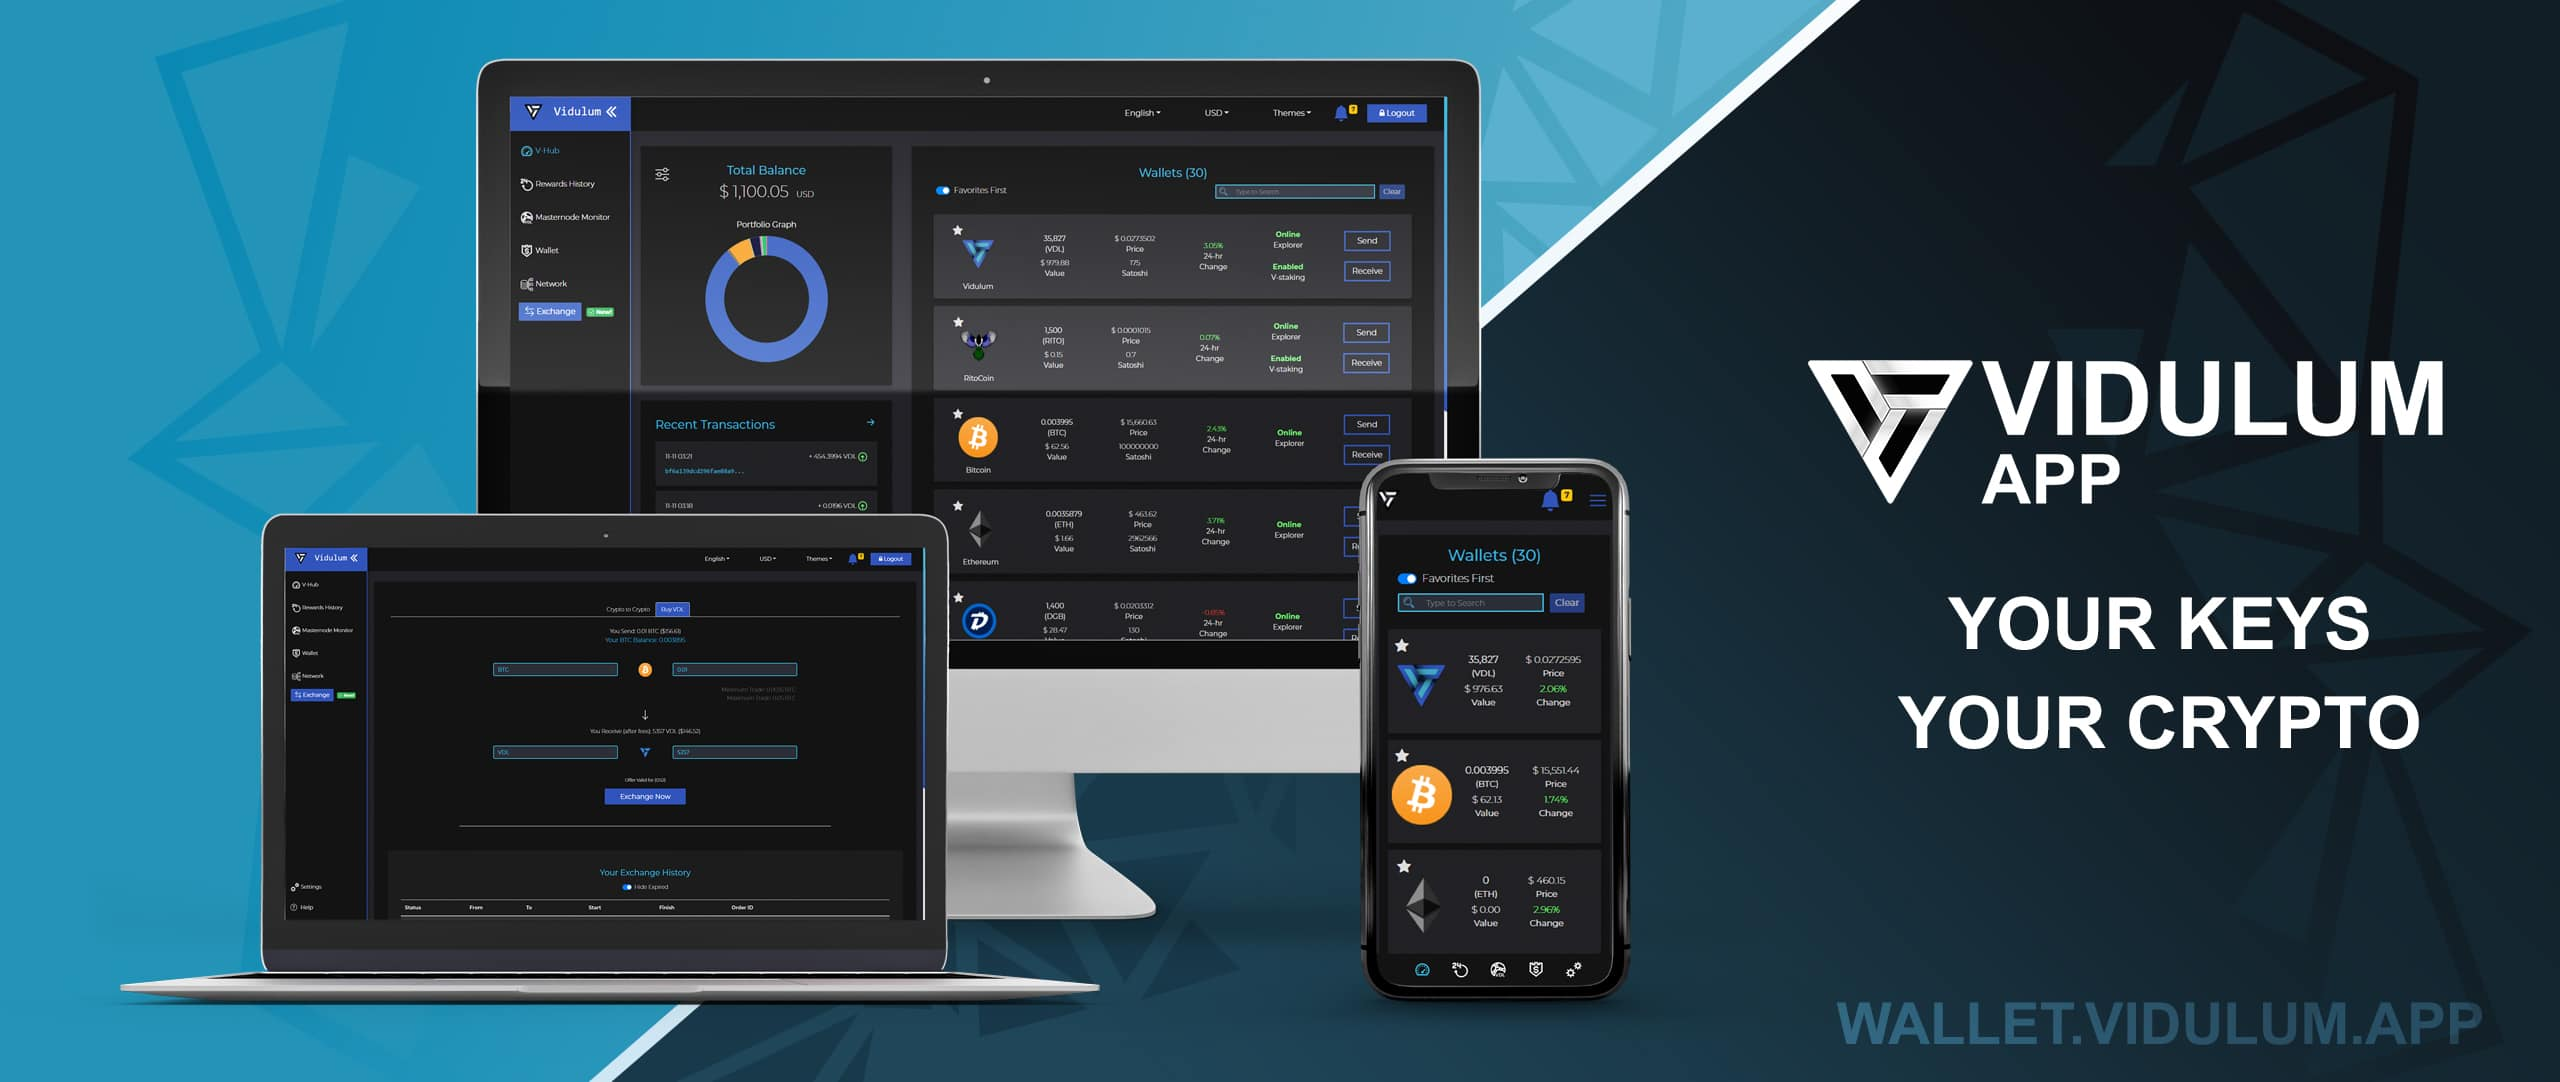 Vidulum wallet with staking features for their vdl token